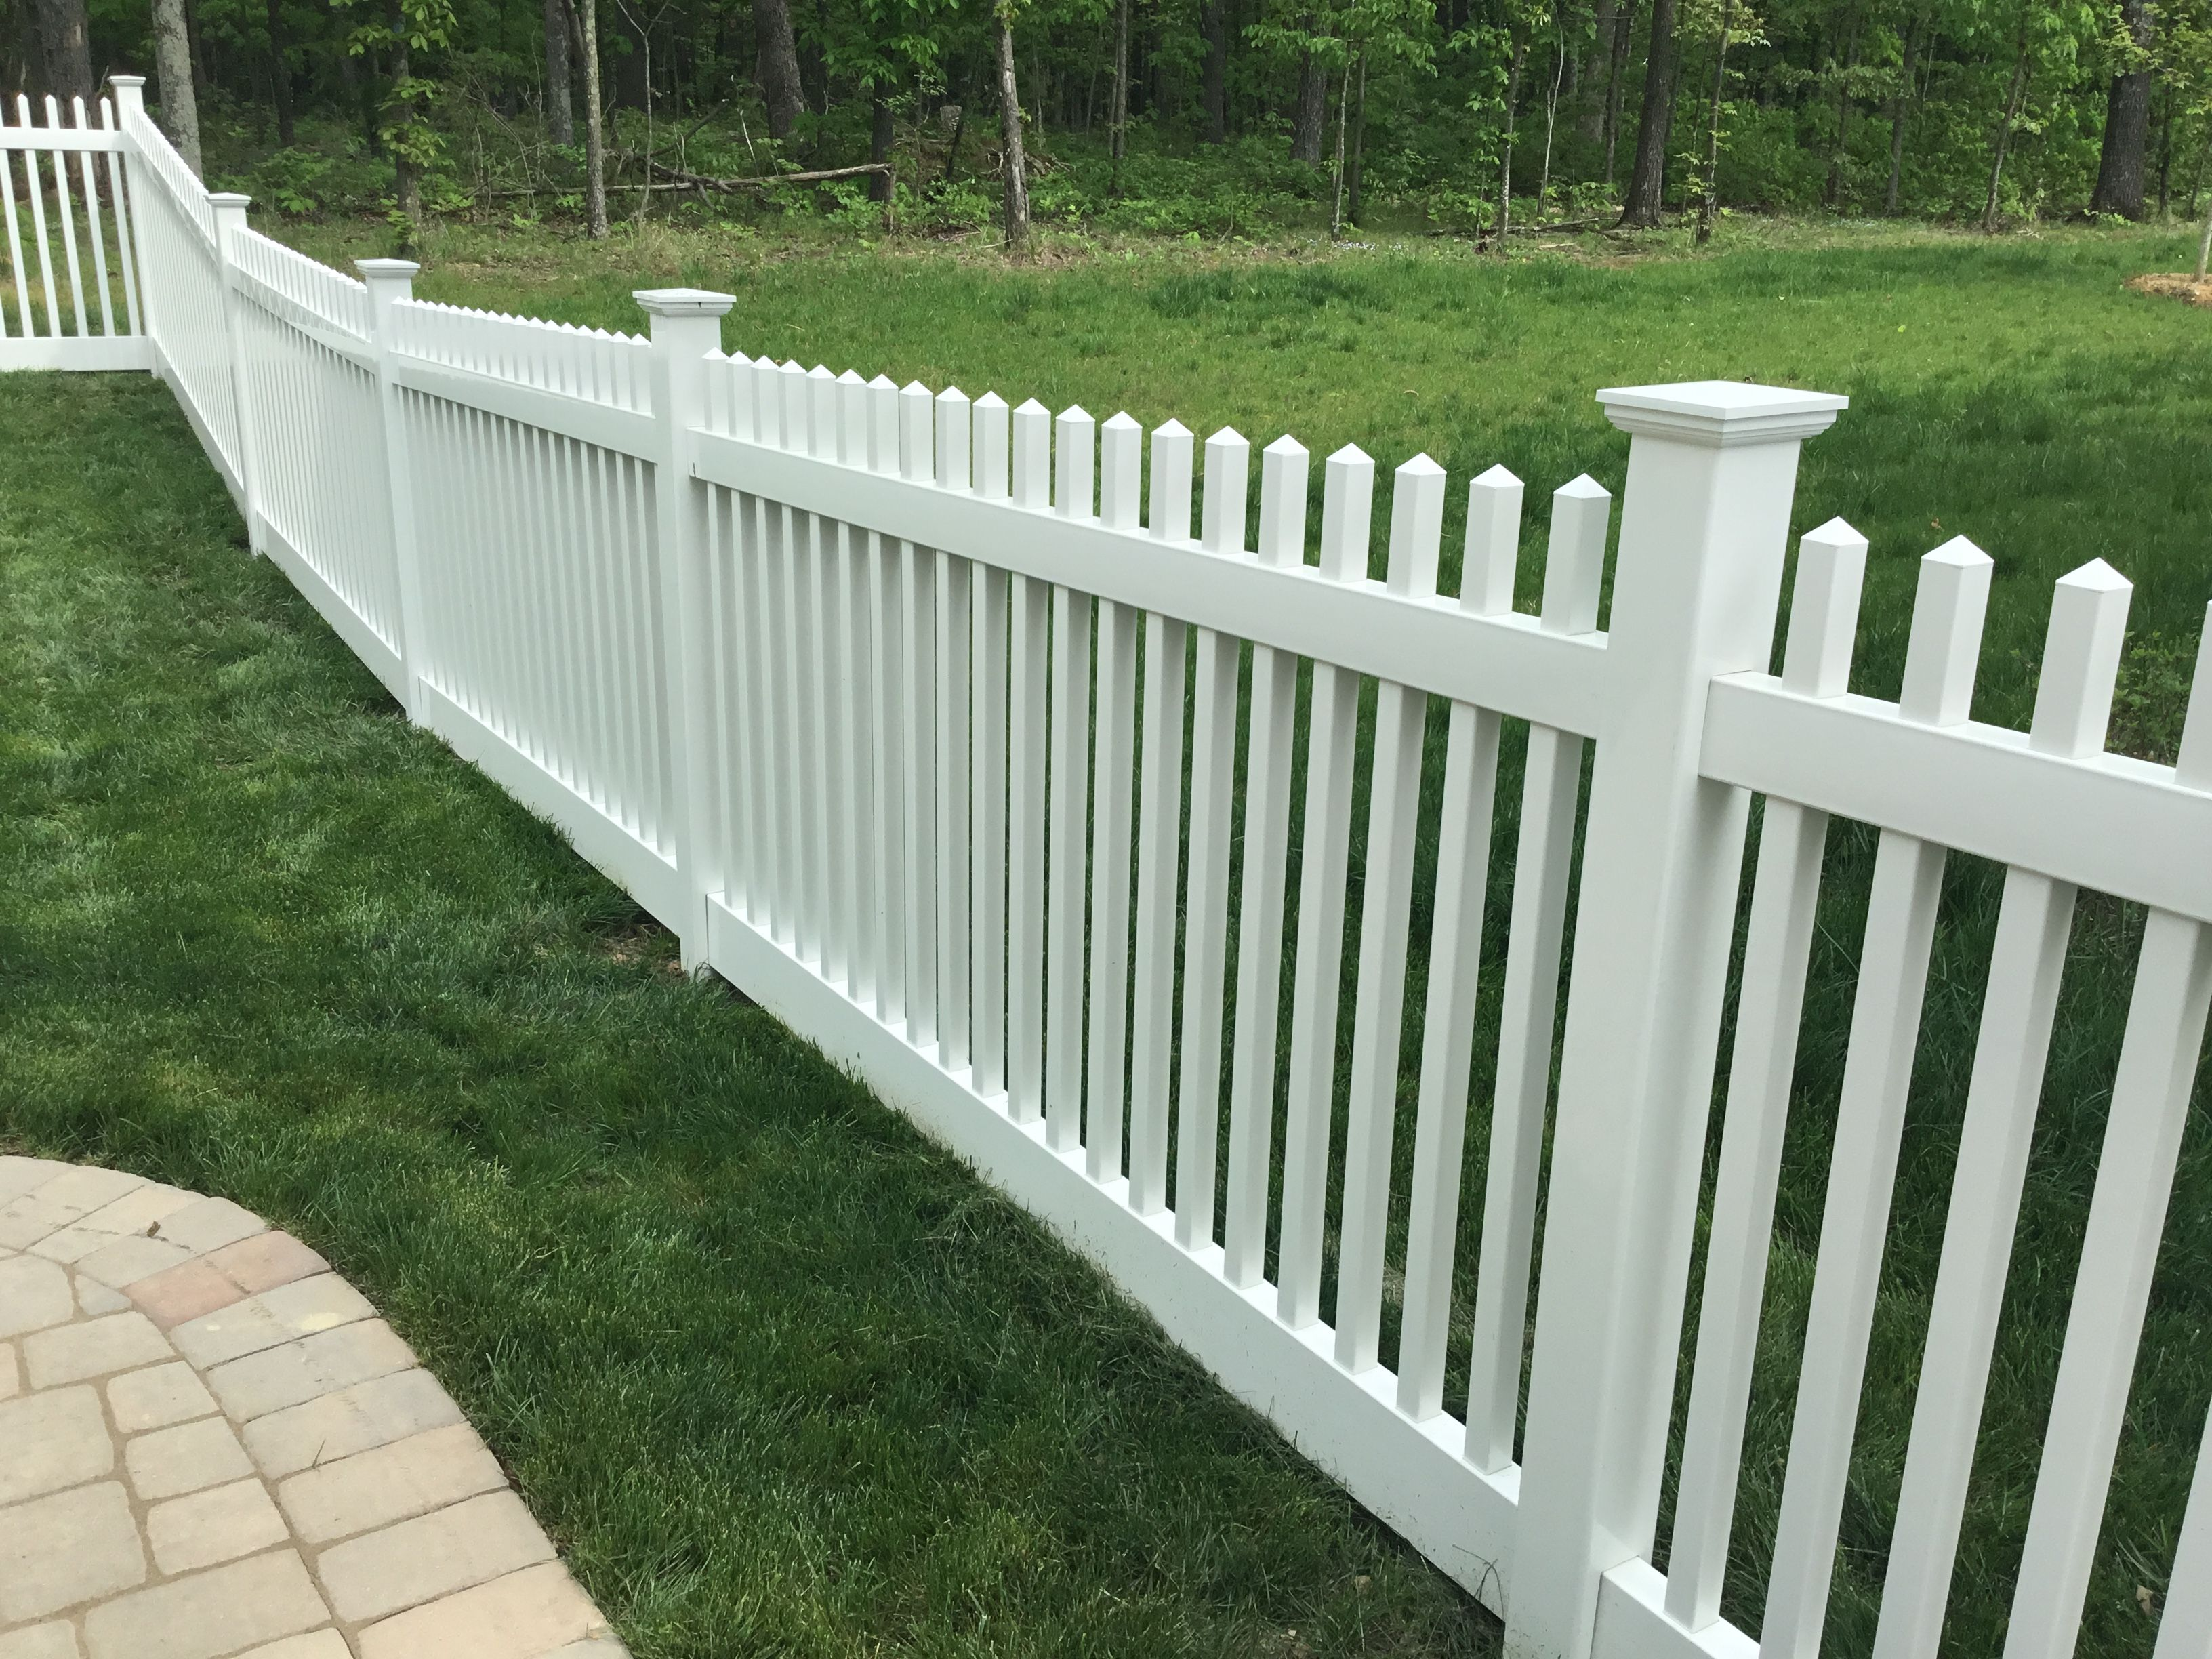 Vinyl fence designs Vinyl Fencing Vinyl Picket Fence White Vinyl Picket Fence Design Ideas Beautiful Vinyl Fence Design Ideas Fence Designs Lions Fence Award Winning Local Co Abc Fence Company Vinyl Picket Fence White Vinyl Picket Fence Design Ideas Beautiful